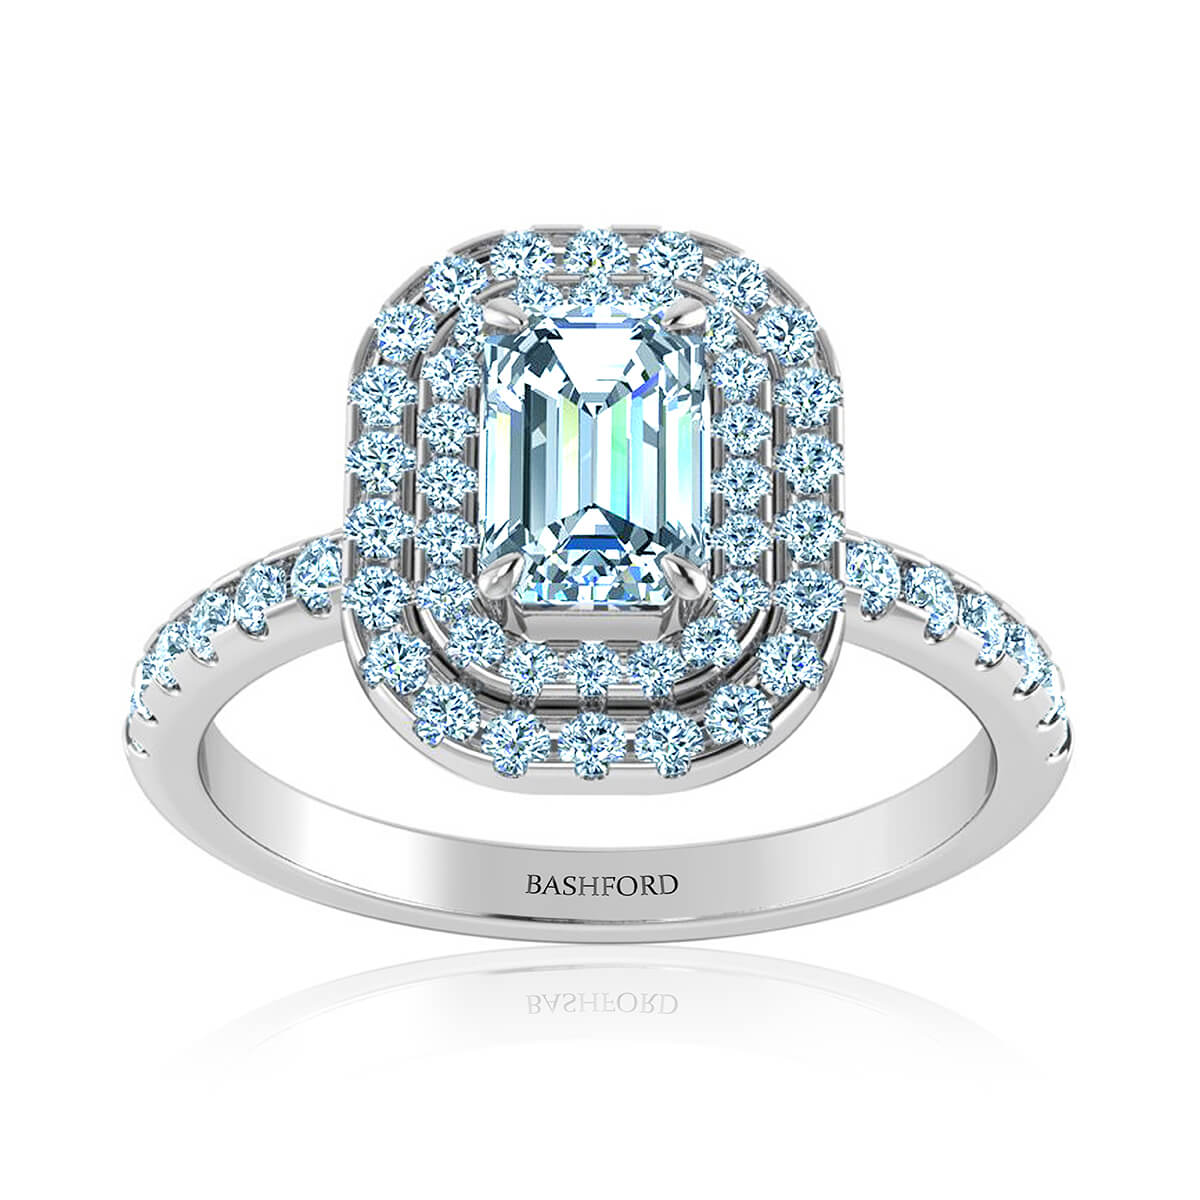 Positano Halo Diamond Ring